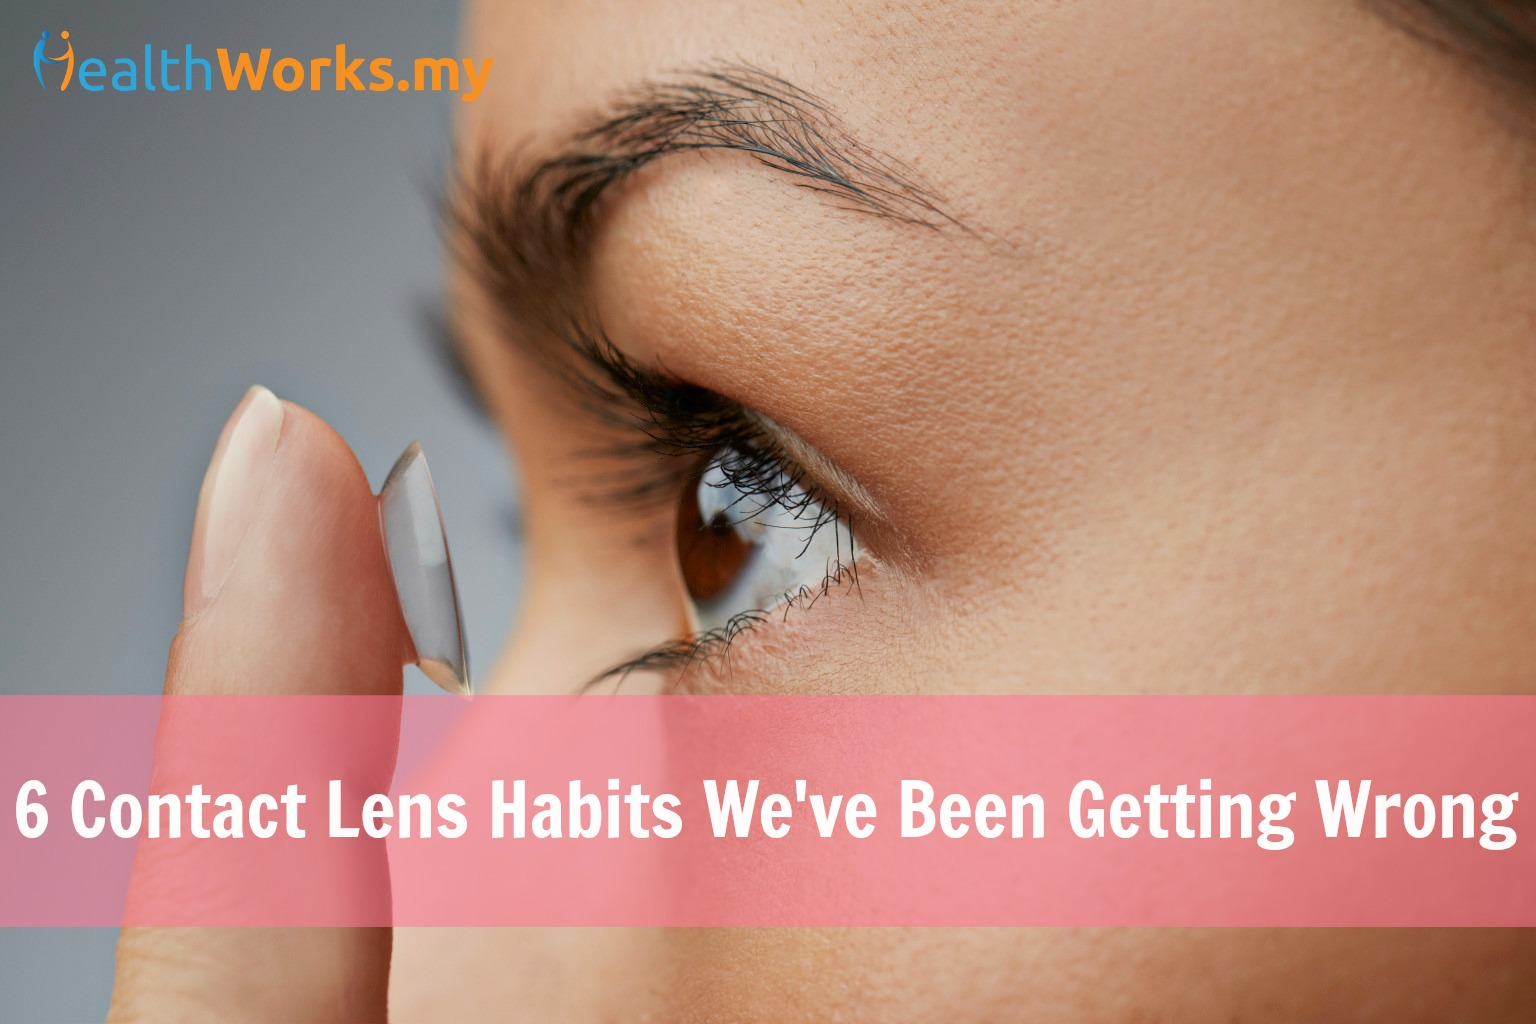 6 Contact Lens Hygiene Habits You May Have Been Getting Wrong